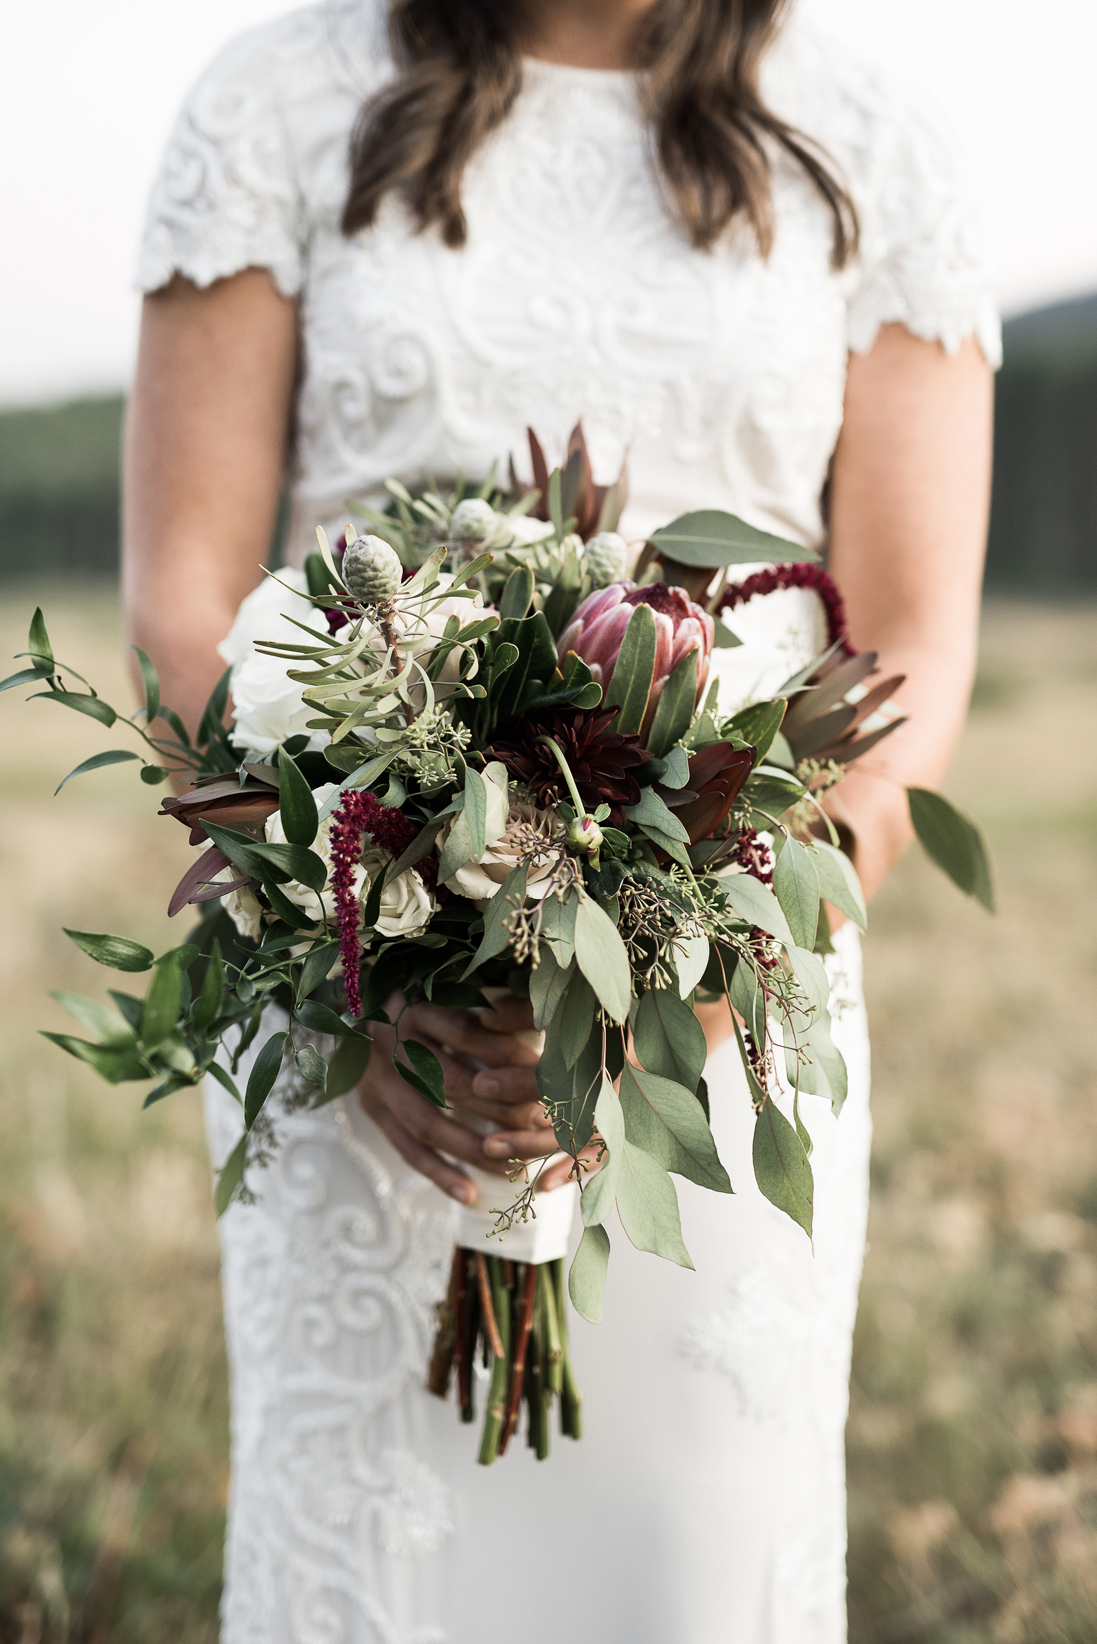 bridal bouquet filled with greenery